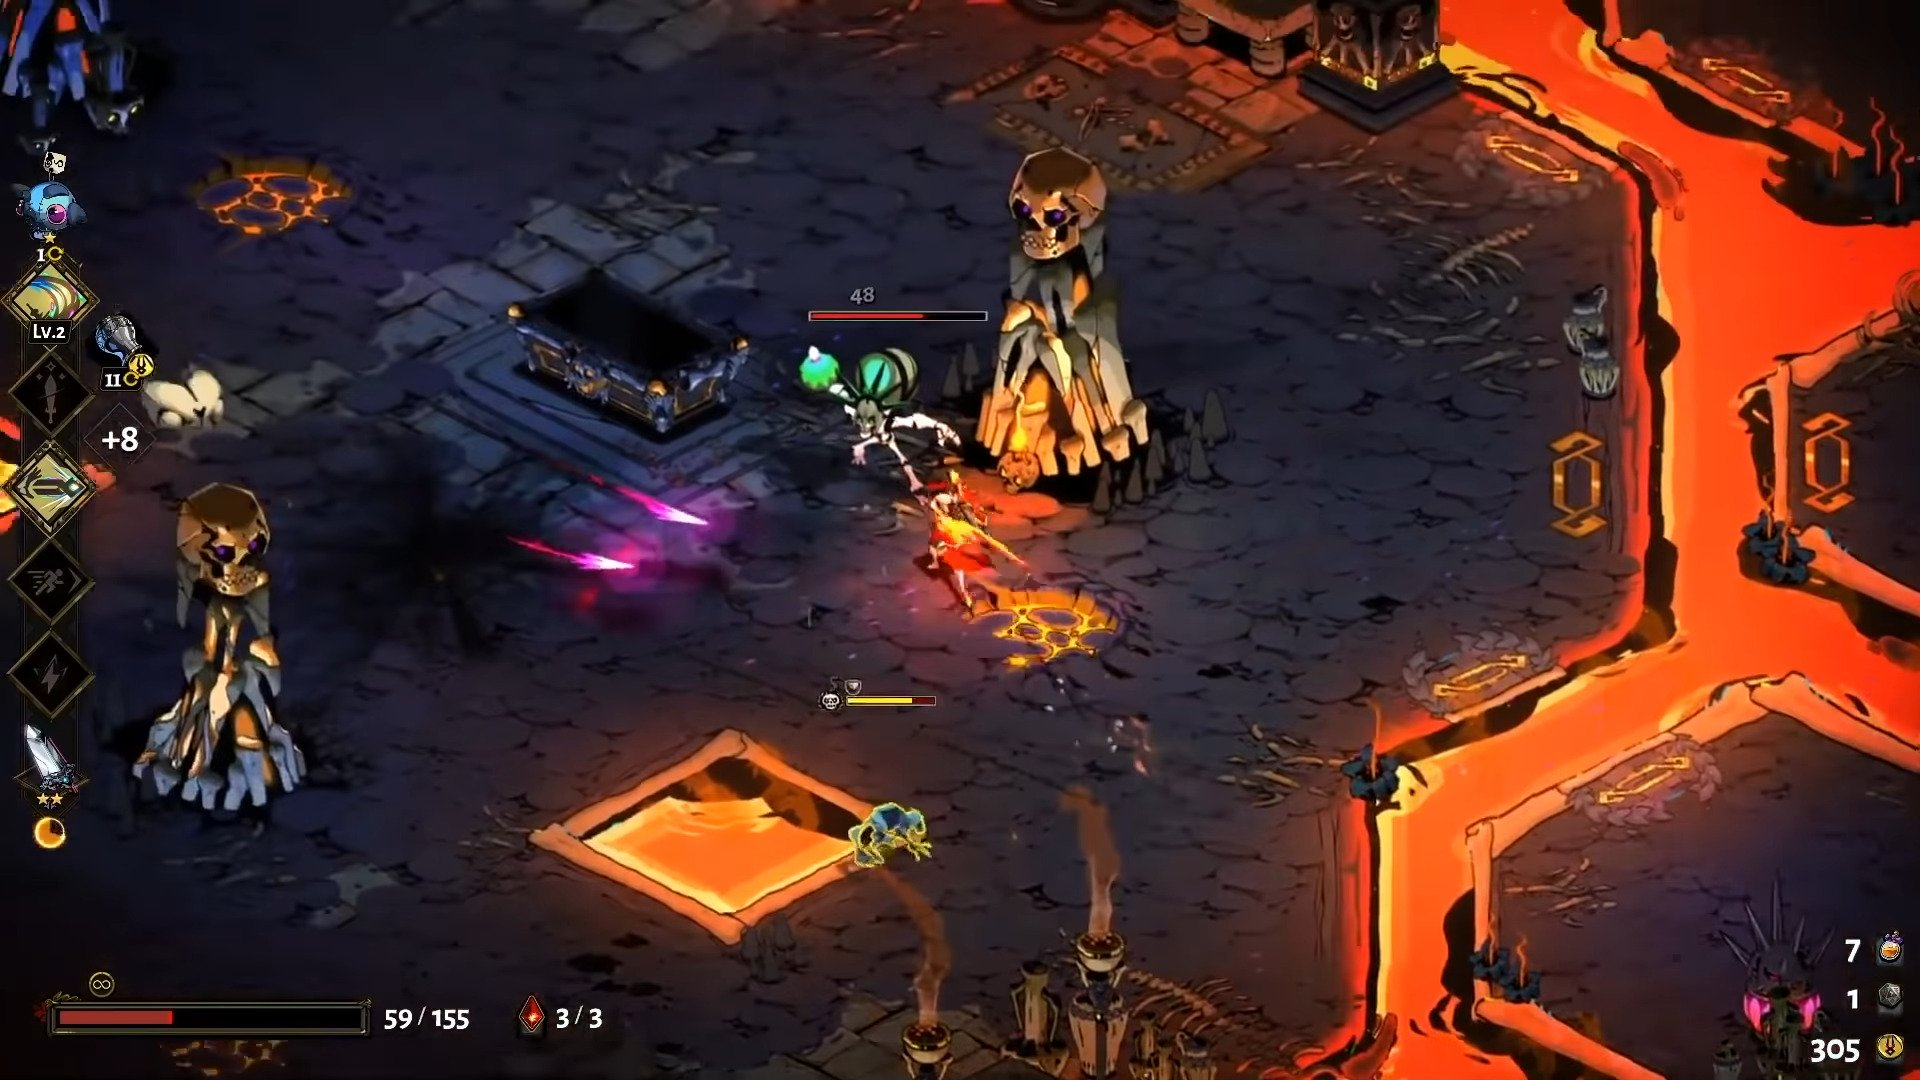 Roguelike Hades From Supergiant Games Has Exited From Early Access After A Brilliant Showing